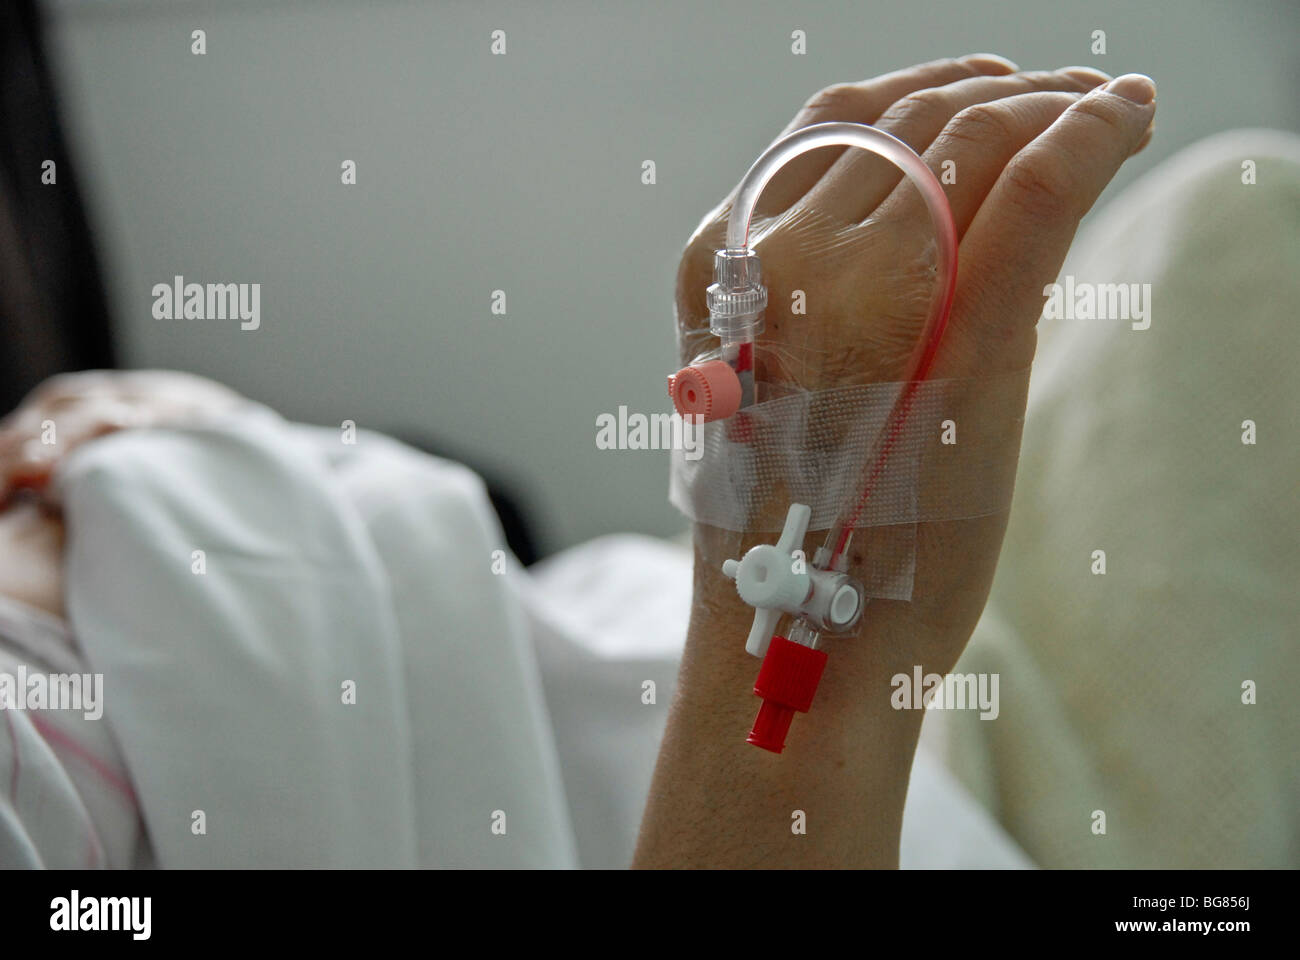 FEMALE PATIENT HAND PREAPERED FOR  BLOOD TEST - Stock Image